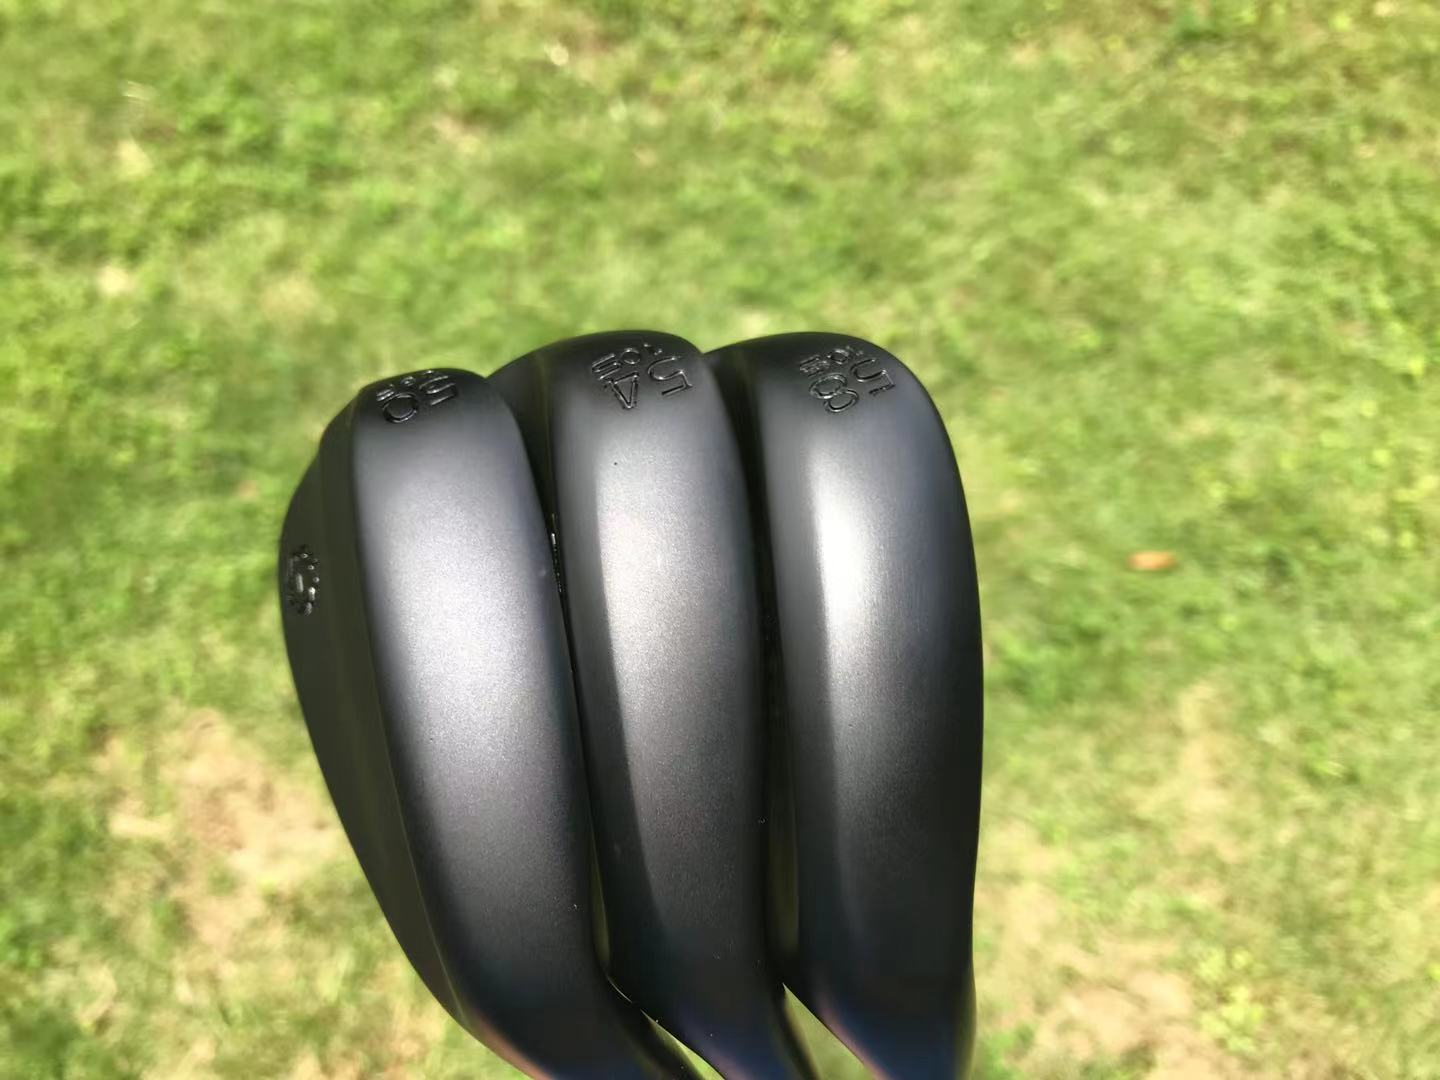 Golf clubs Golf SM7 wedges black Right Handed 50-08F 54-10S 58-10S degrees 3pcs S300 or R300 Steel shaft